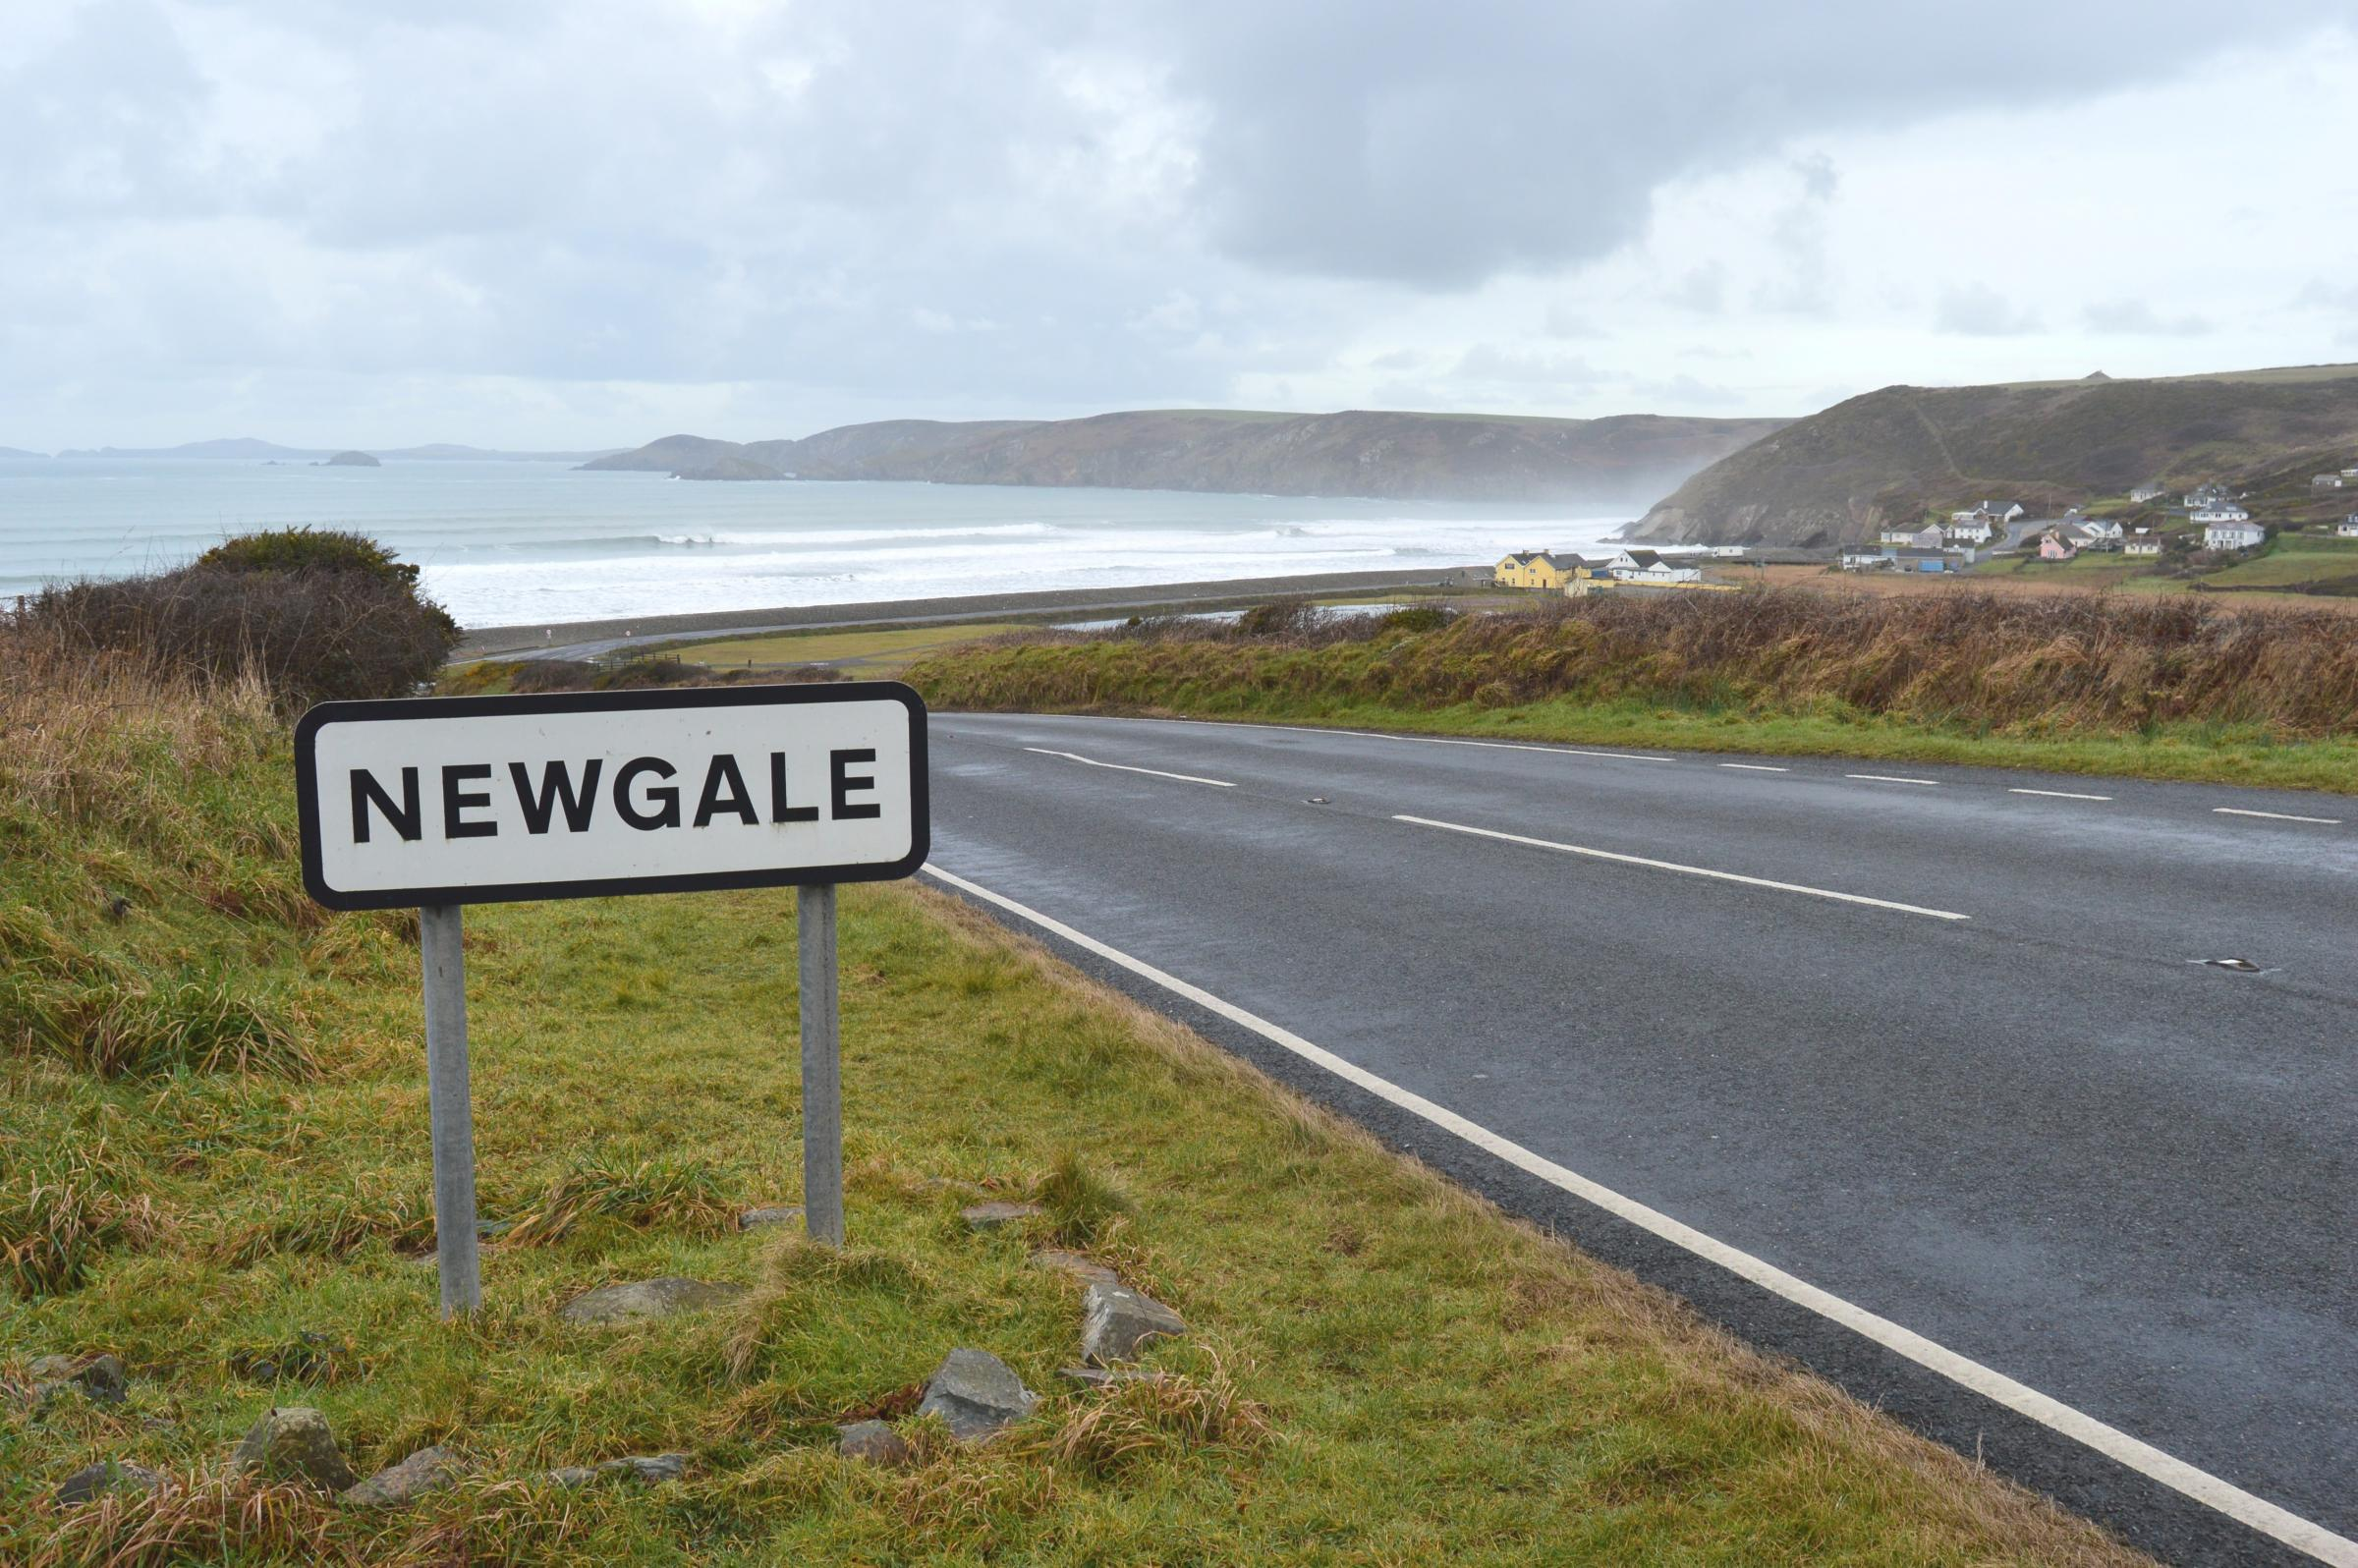 A kite or windsurfer has been injured in Newgale this afternoon.